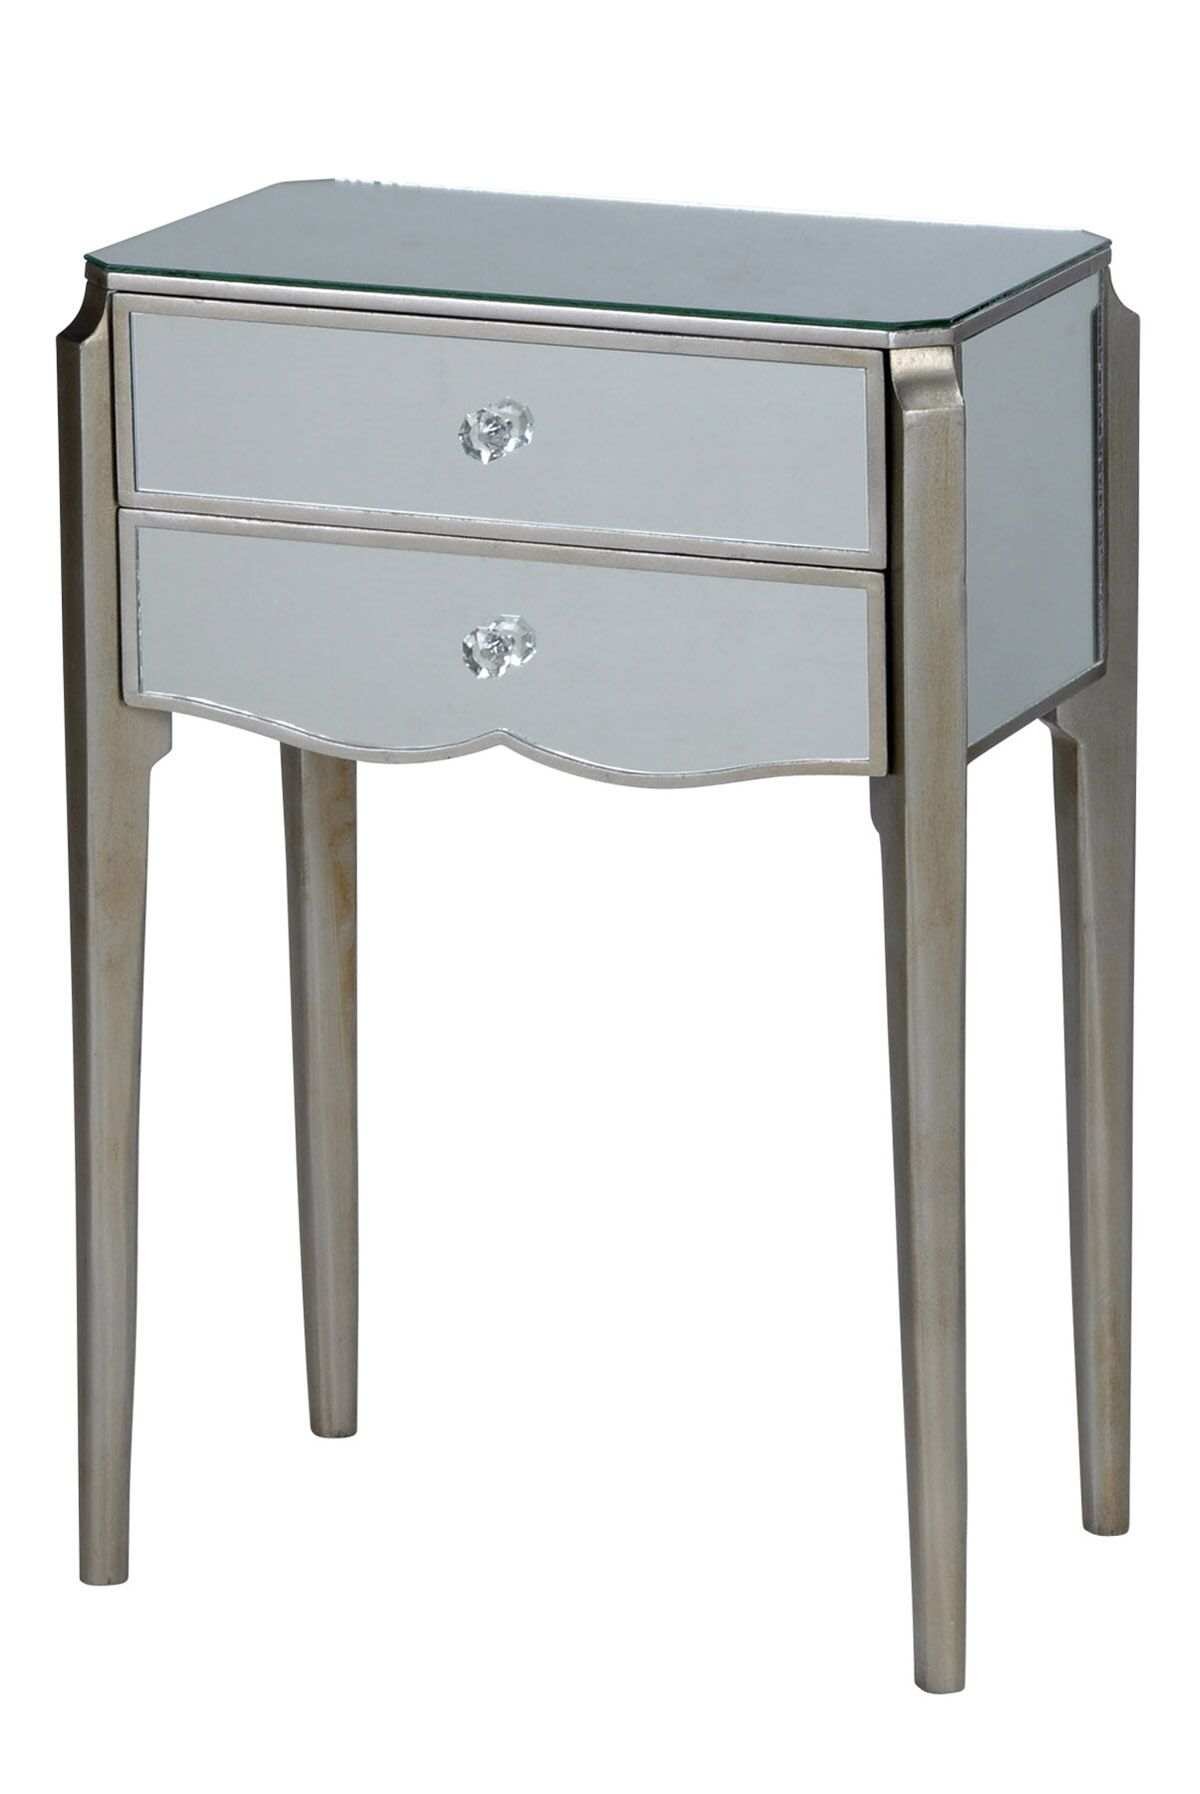 Monteleone 2 Drawer Mirrored Wood End Table with Storage